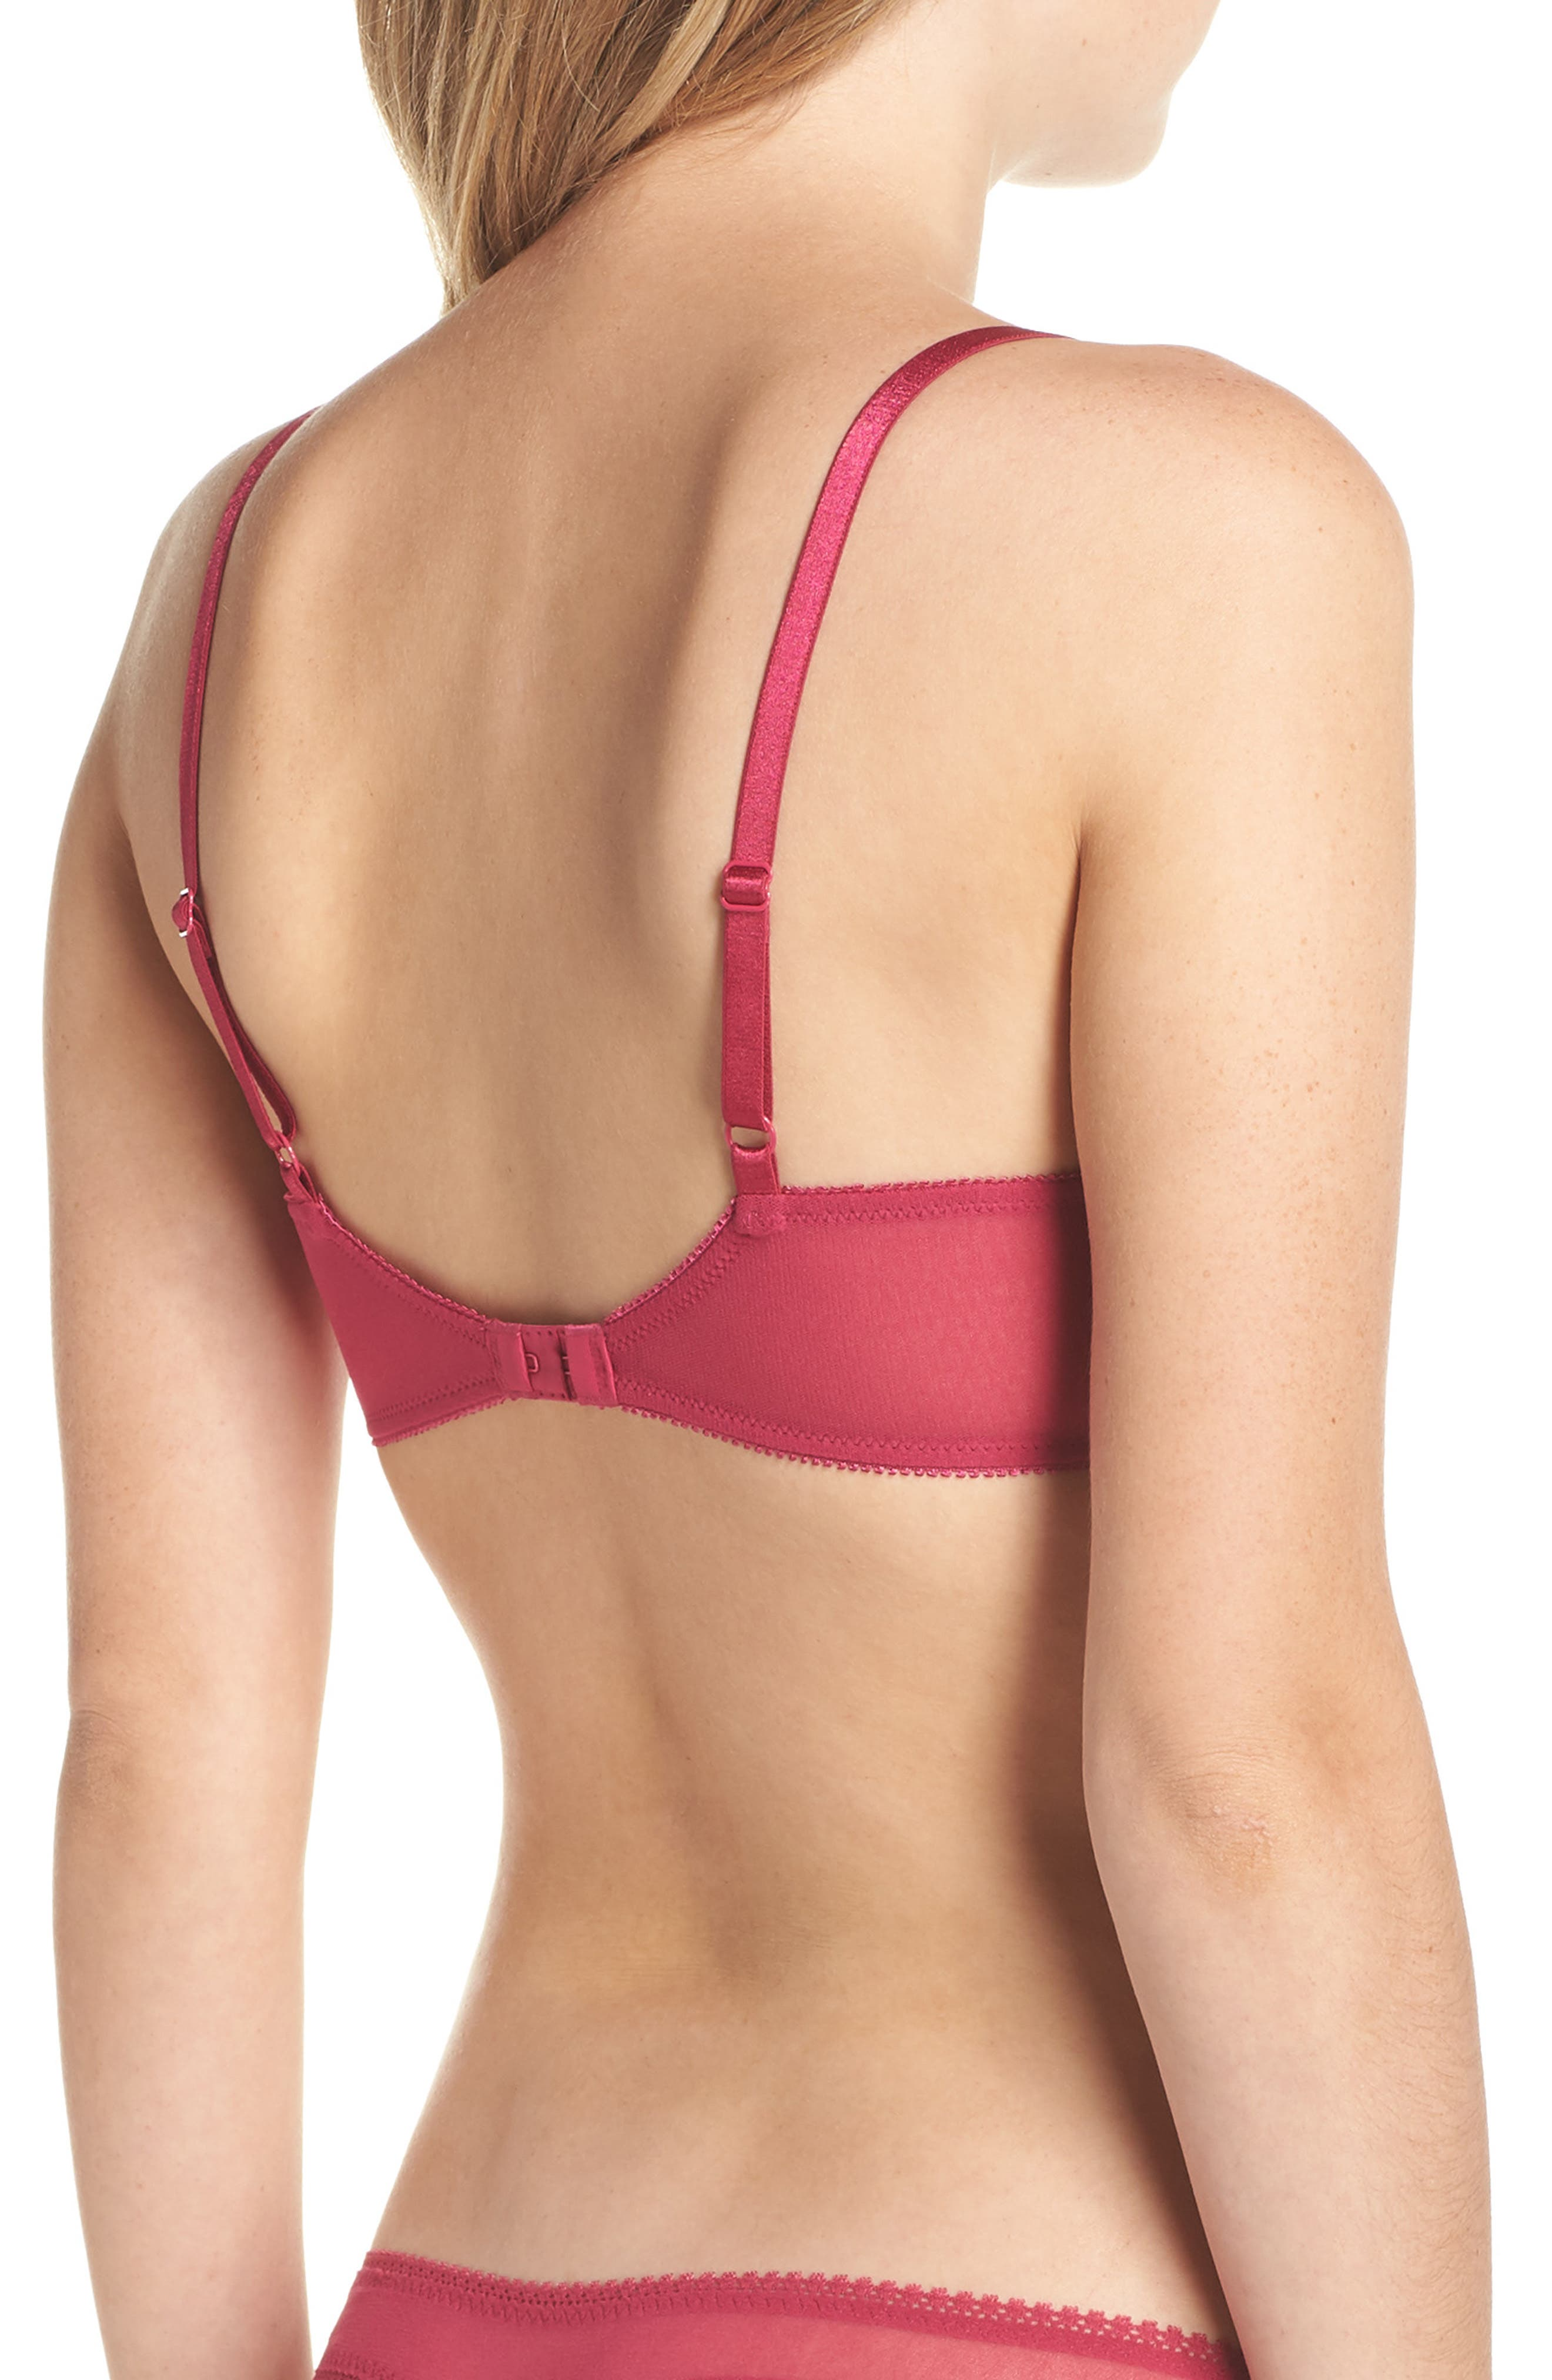 'Bump It Up' Underwire Push-Up Bra,                             Alternate thumbnail 2, color,                             RADIANT ORCHID